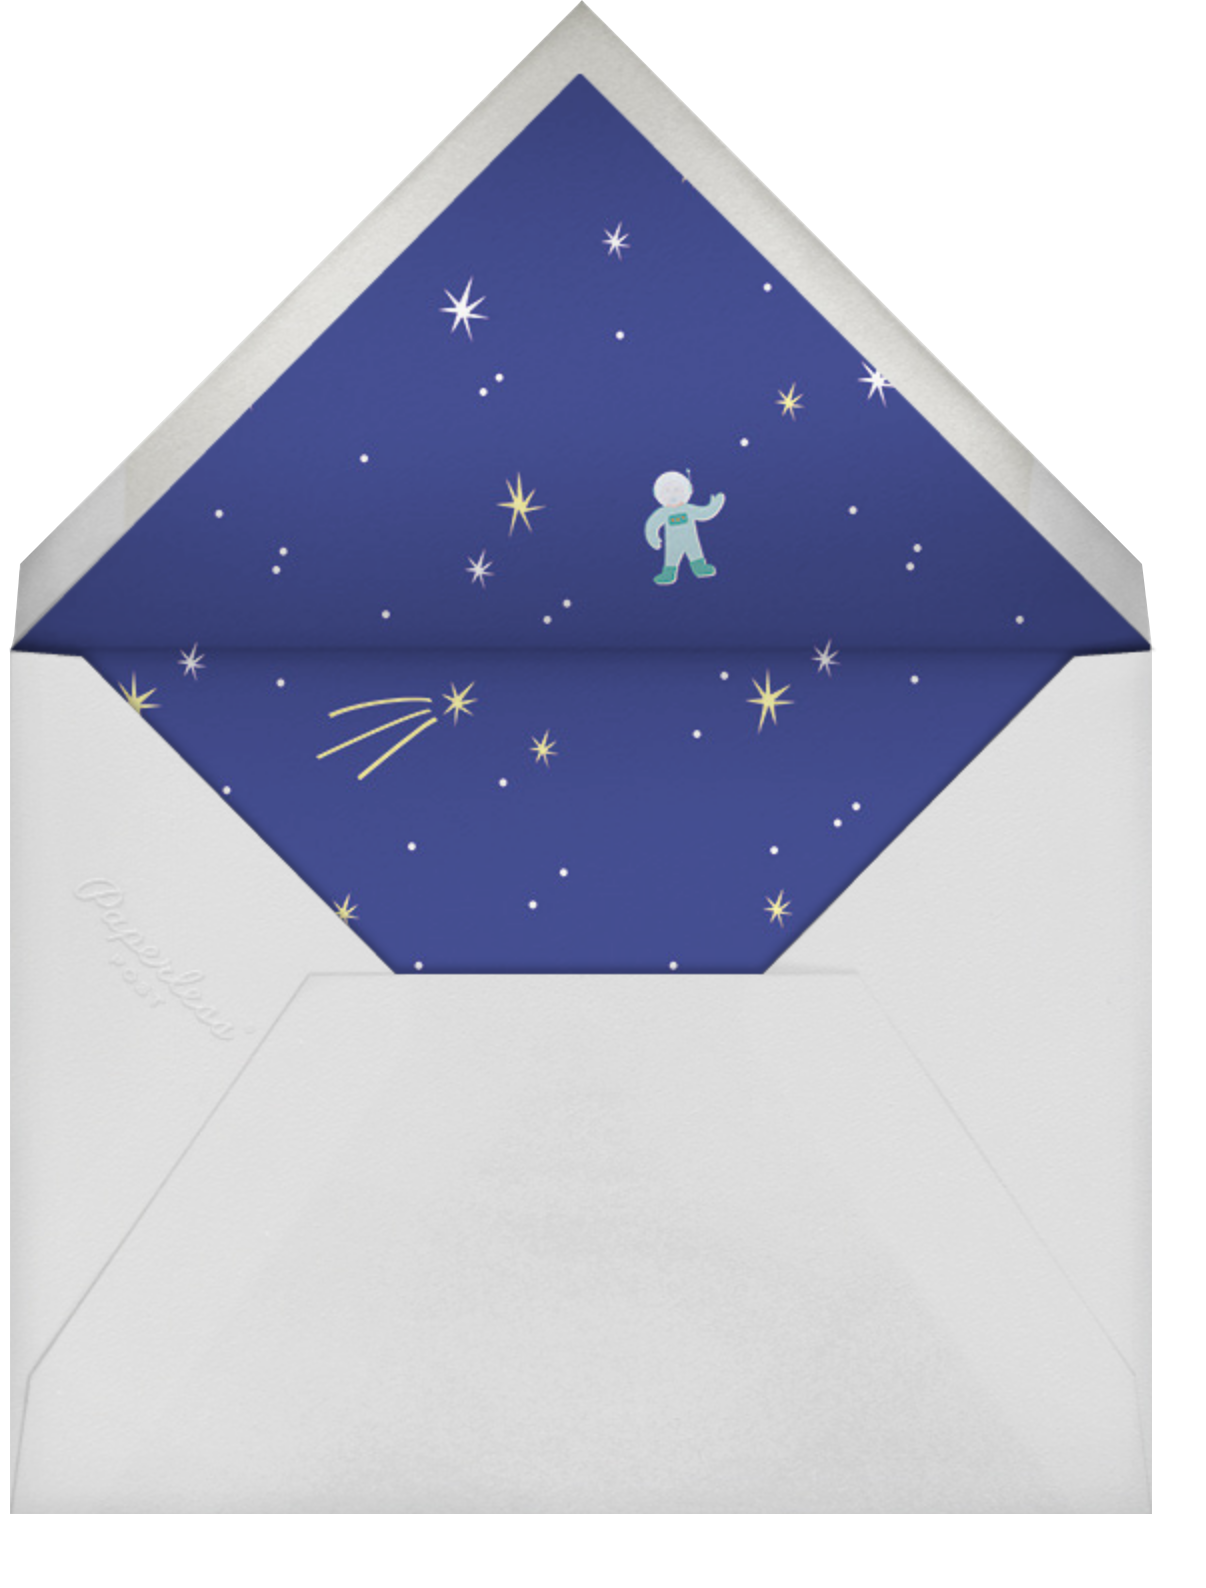 Baby Blastoff - Cheree Berry - Baby shower - envelope back